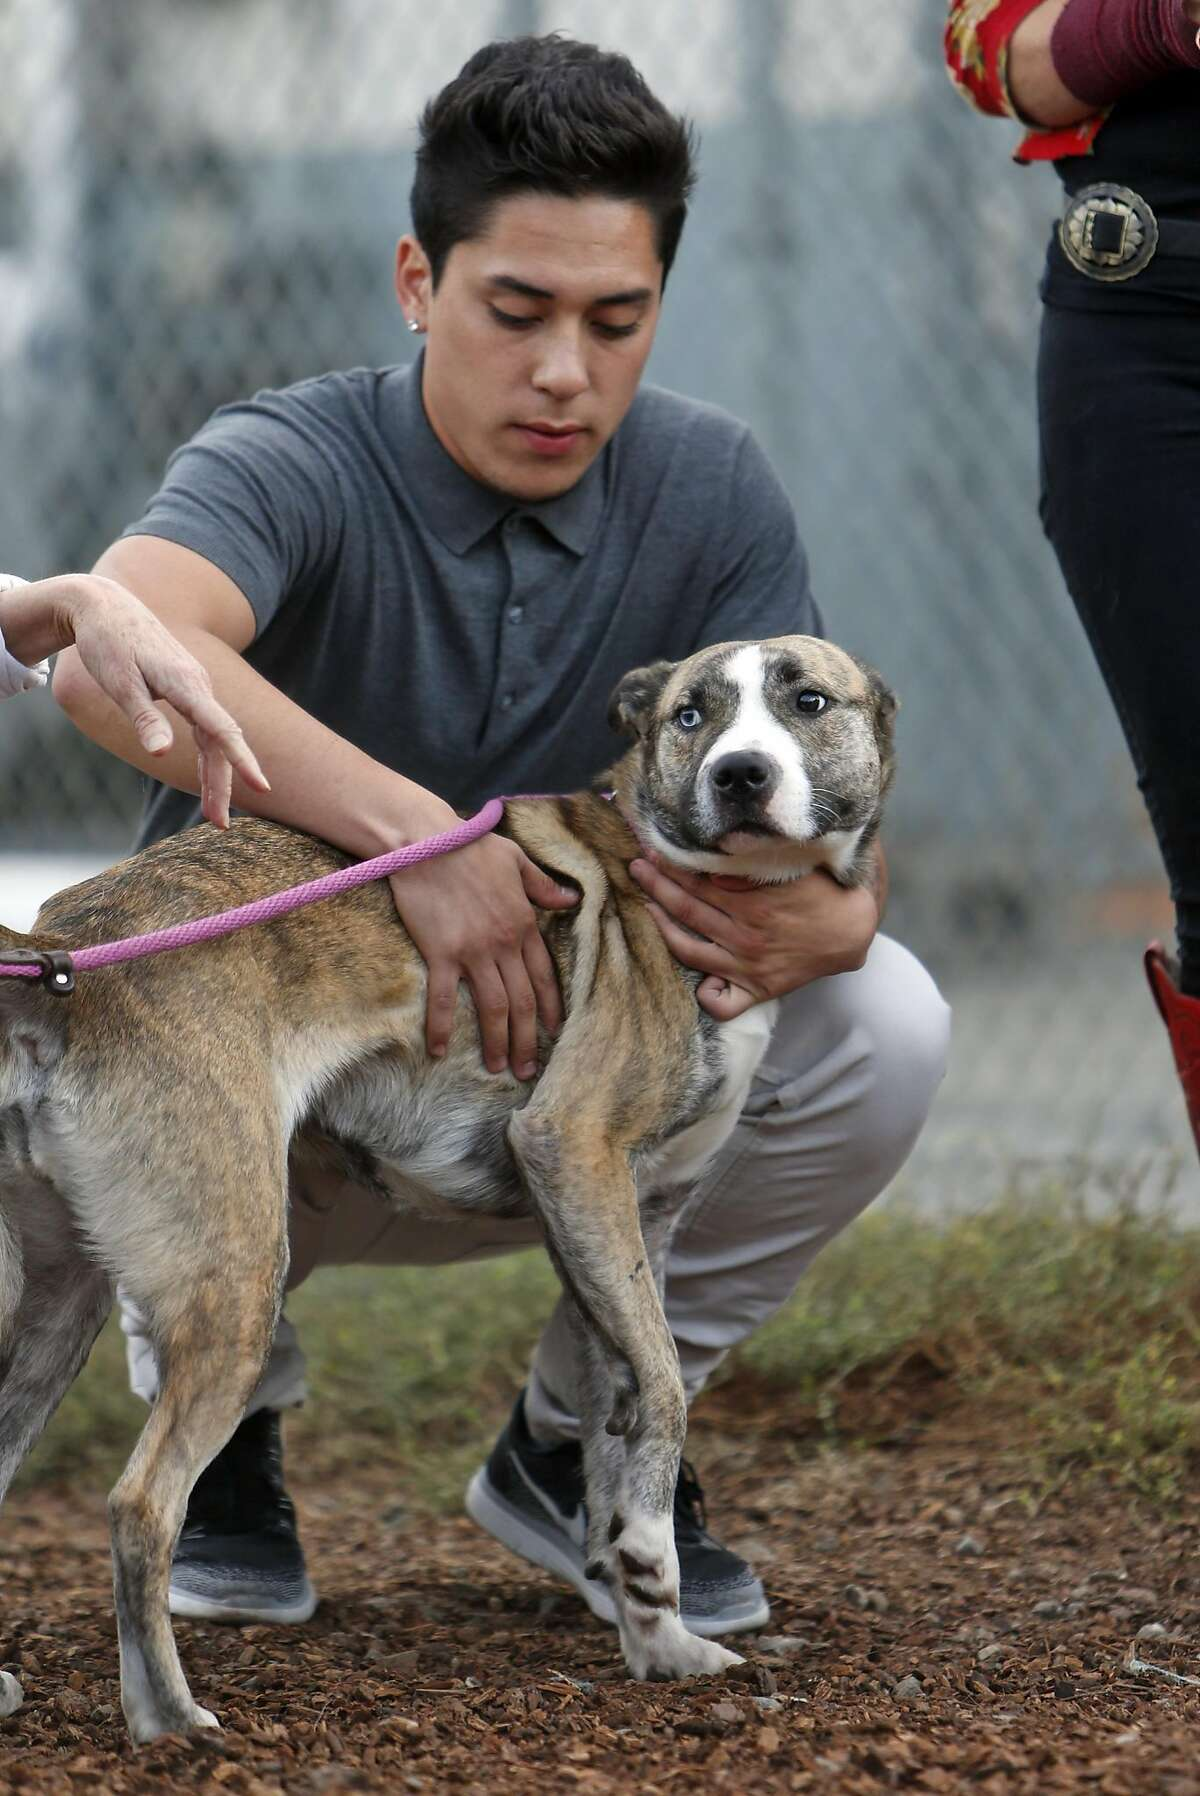 Andre Millan, the son of dog expert Cesar Millan, holds a dog as a new TV show called Dog Nation is filmed at Oakland Animal Services in Oakland, Calif., on Thursday, October 13, 2016.